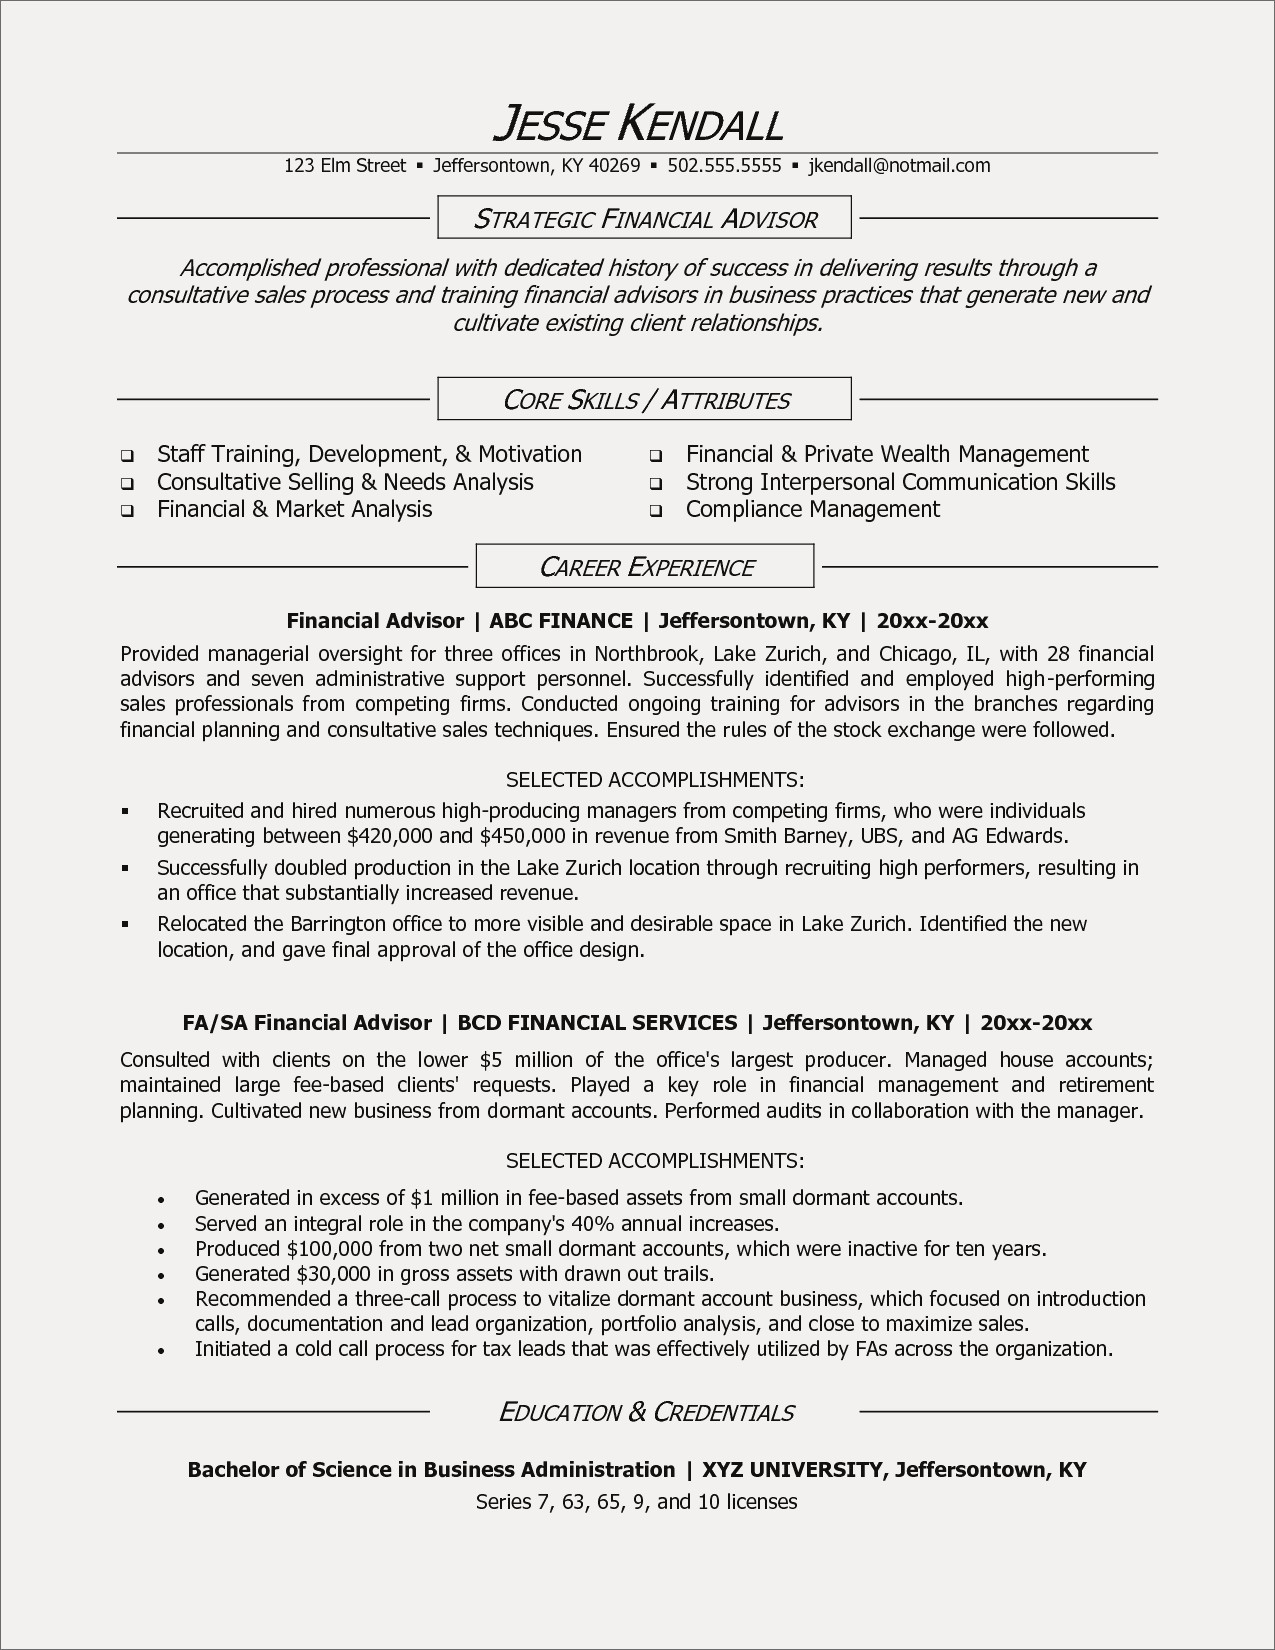 Financial Advisor Resume Template - Certified Financial Planner Resume Refrence Financial Advisor Resume